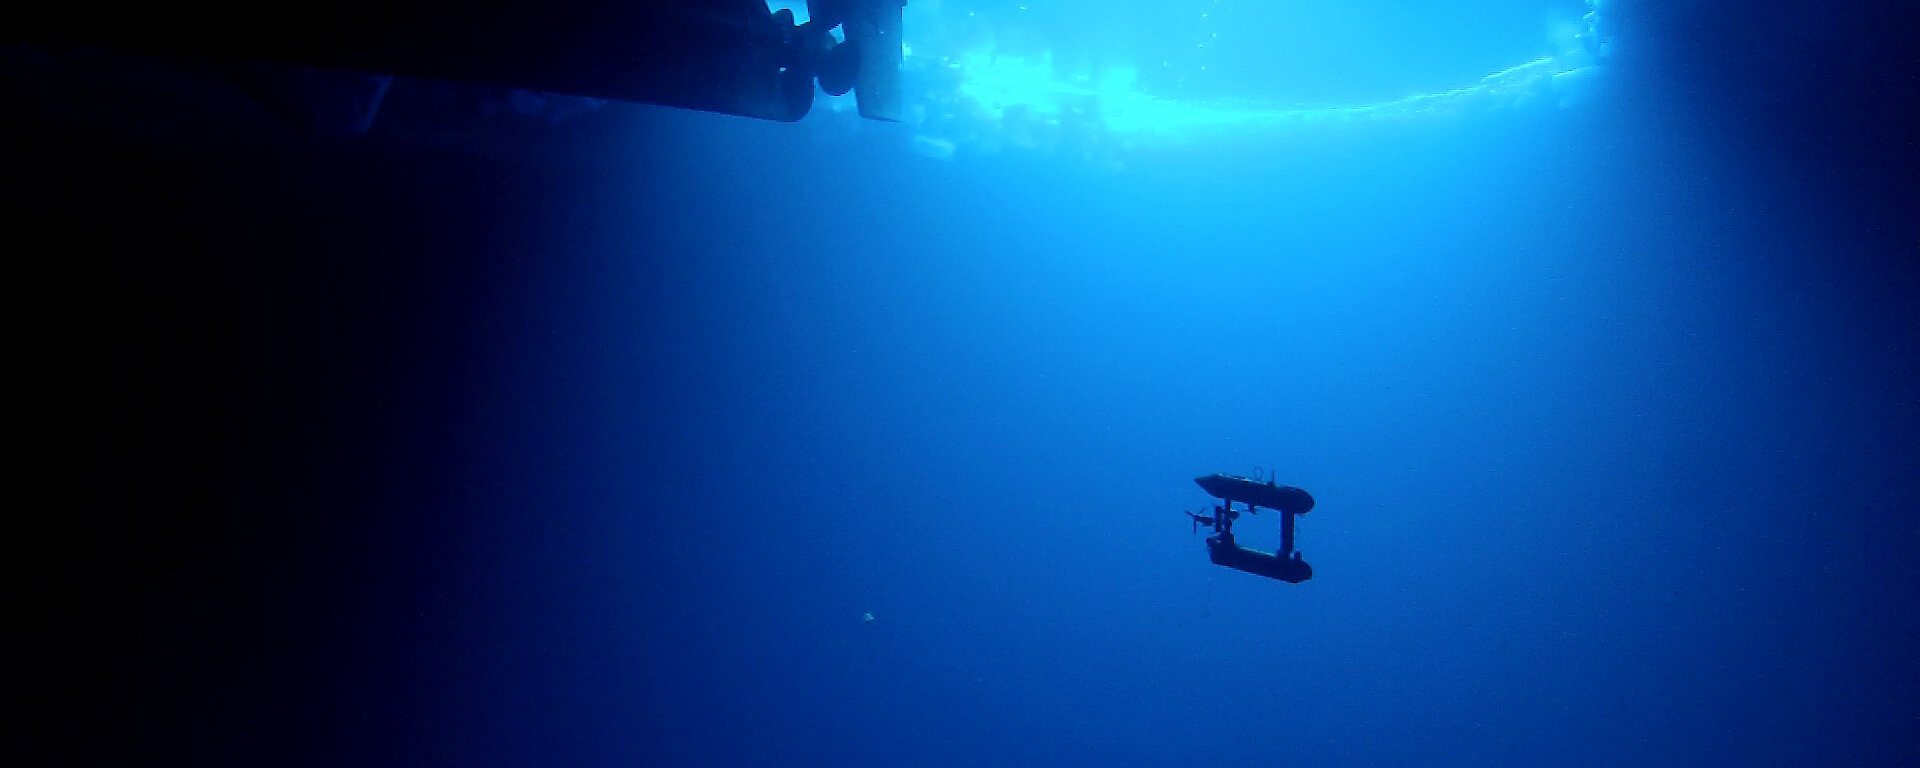 AUV underwater with ship visible above.